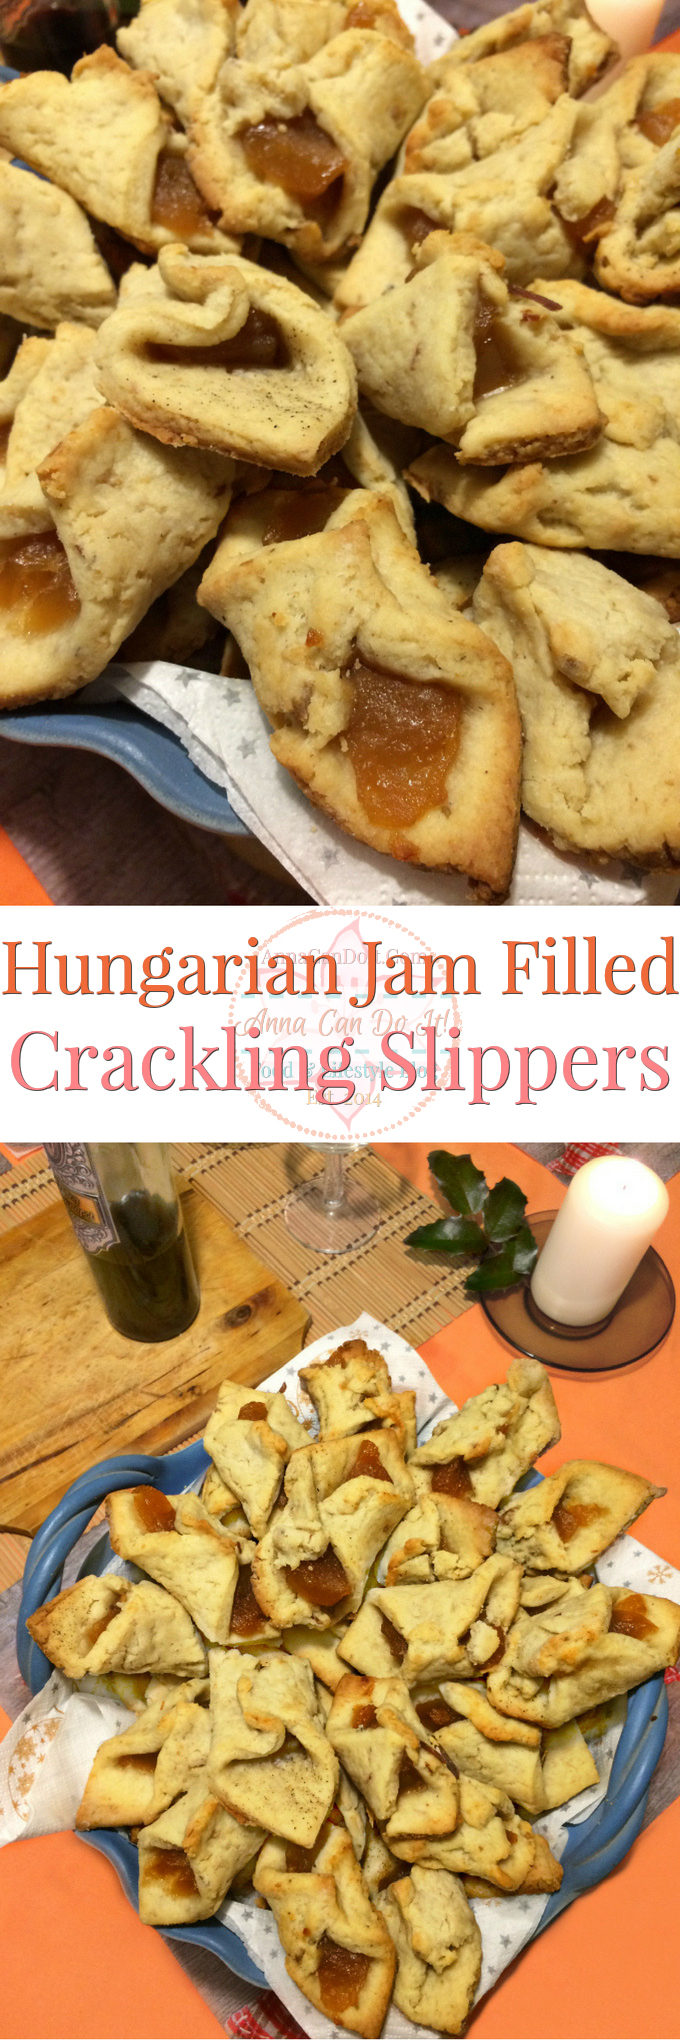 Hungarian Jam Filled Crackling Slippers - Anna Can Do It! - Hungarian Jam Filled Crackling Slippers are divine, friable little biscuits or cookies usually made around Christmas time. Every family has their own recipe and sometimes name for this in here and the countries around us. But one thing we have in common, these are taste wonderful for sure!